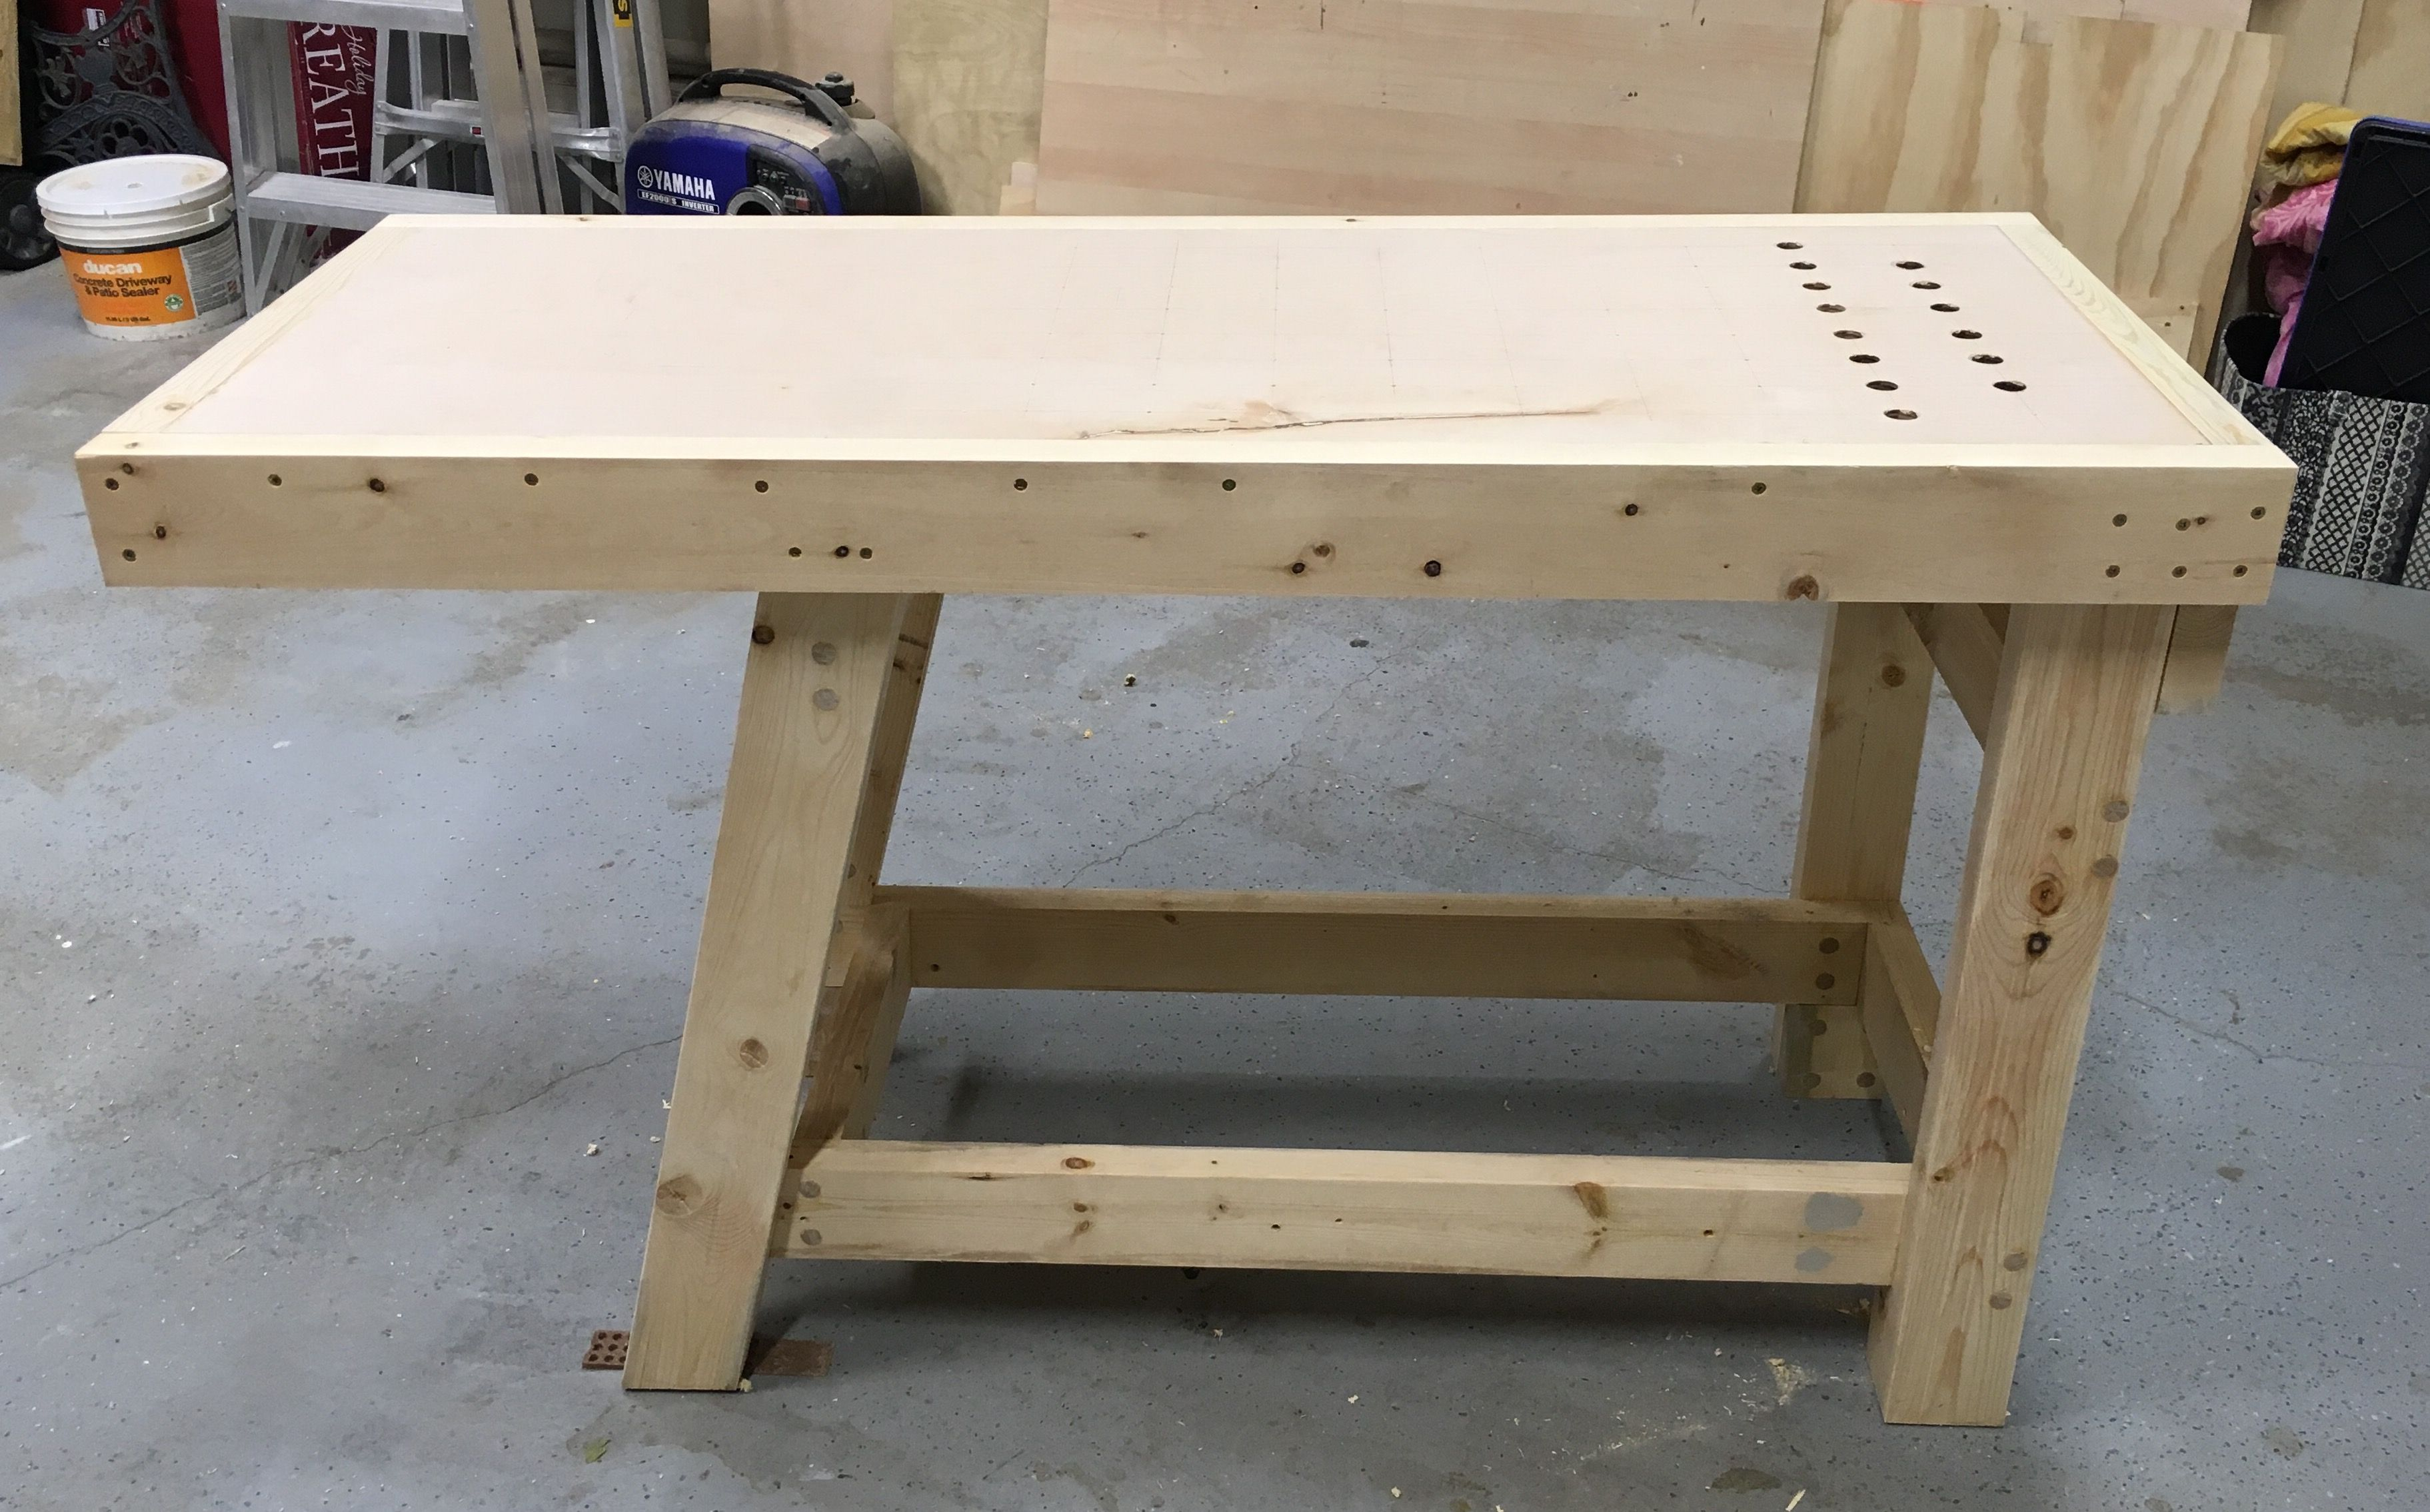 Enjoyable Woodworking Workbench Front Legs Are At A 30 Degree Angle Andrewgaddart Wooden Chair Designs For Living Room Andrewgaddartcom